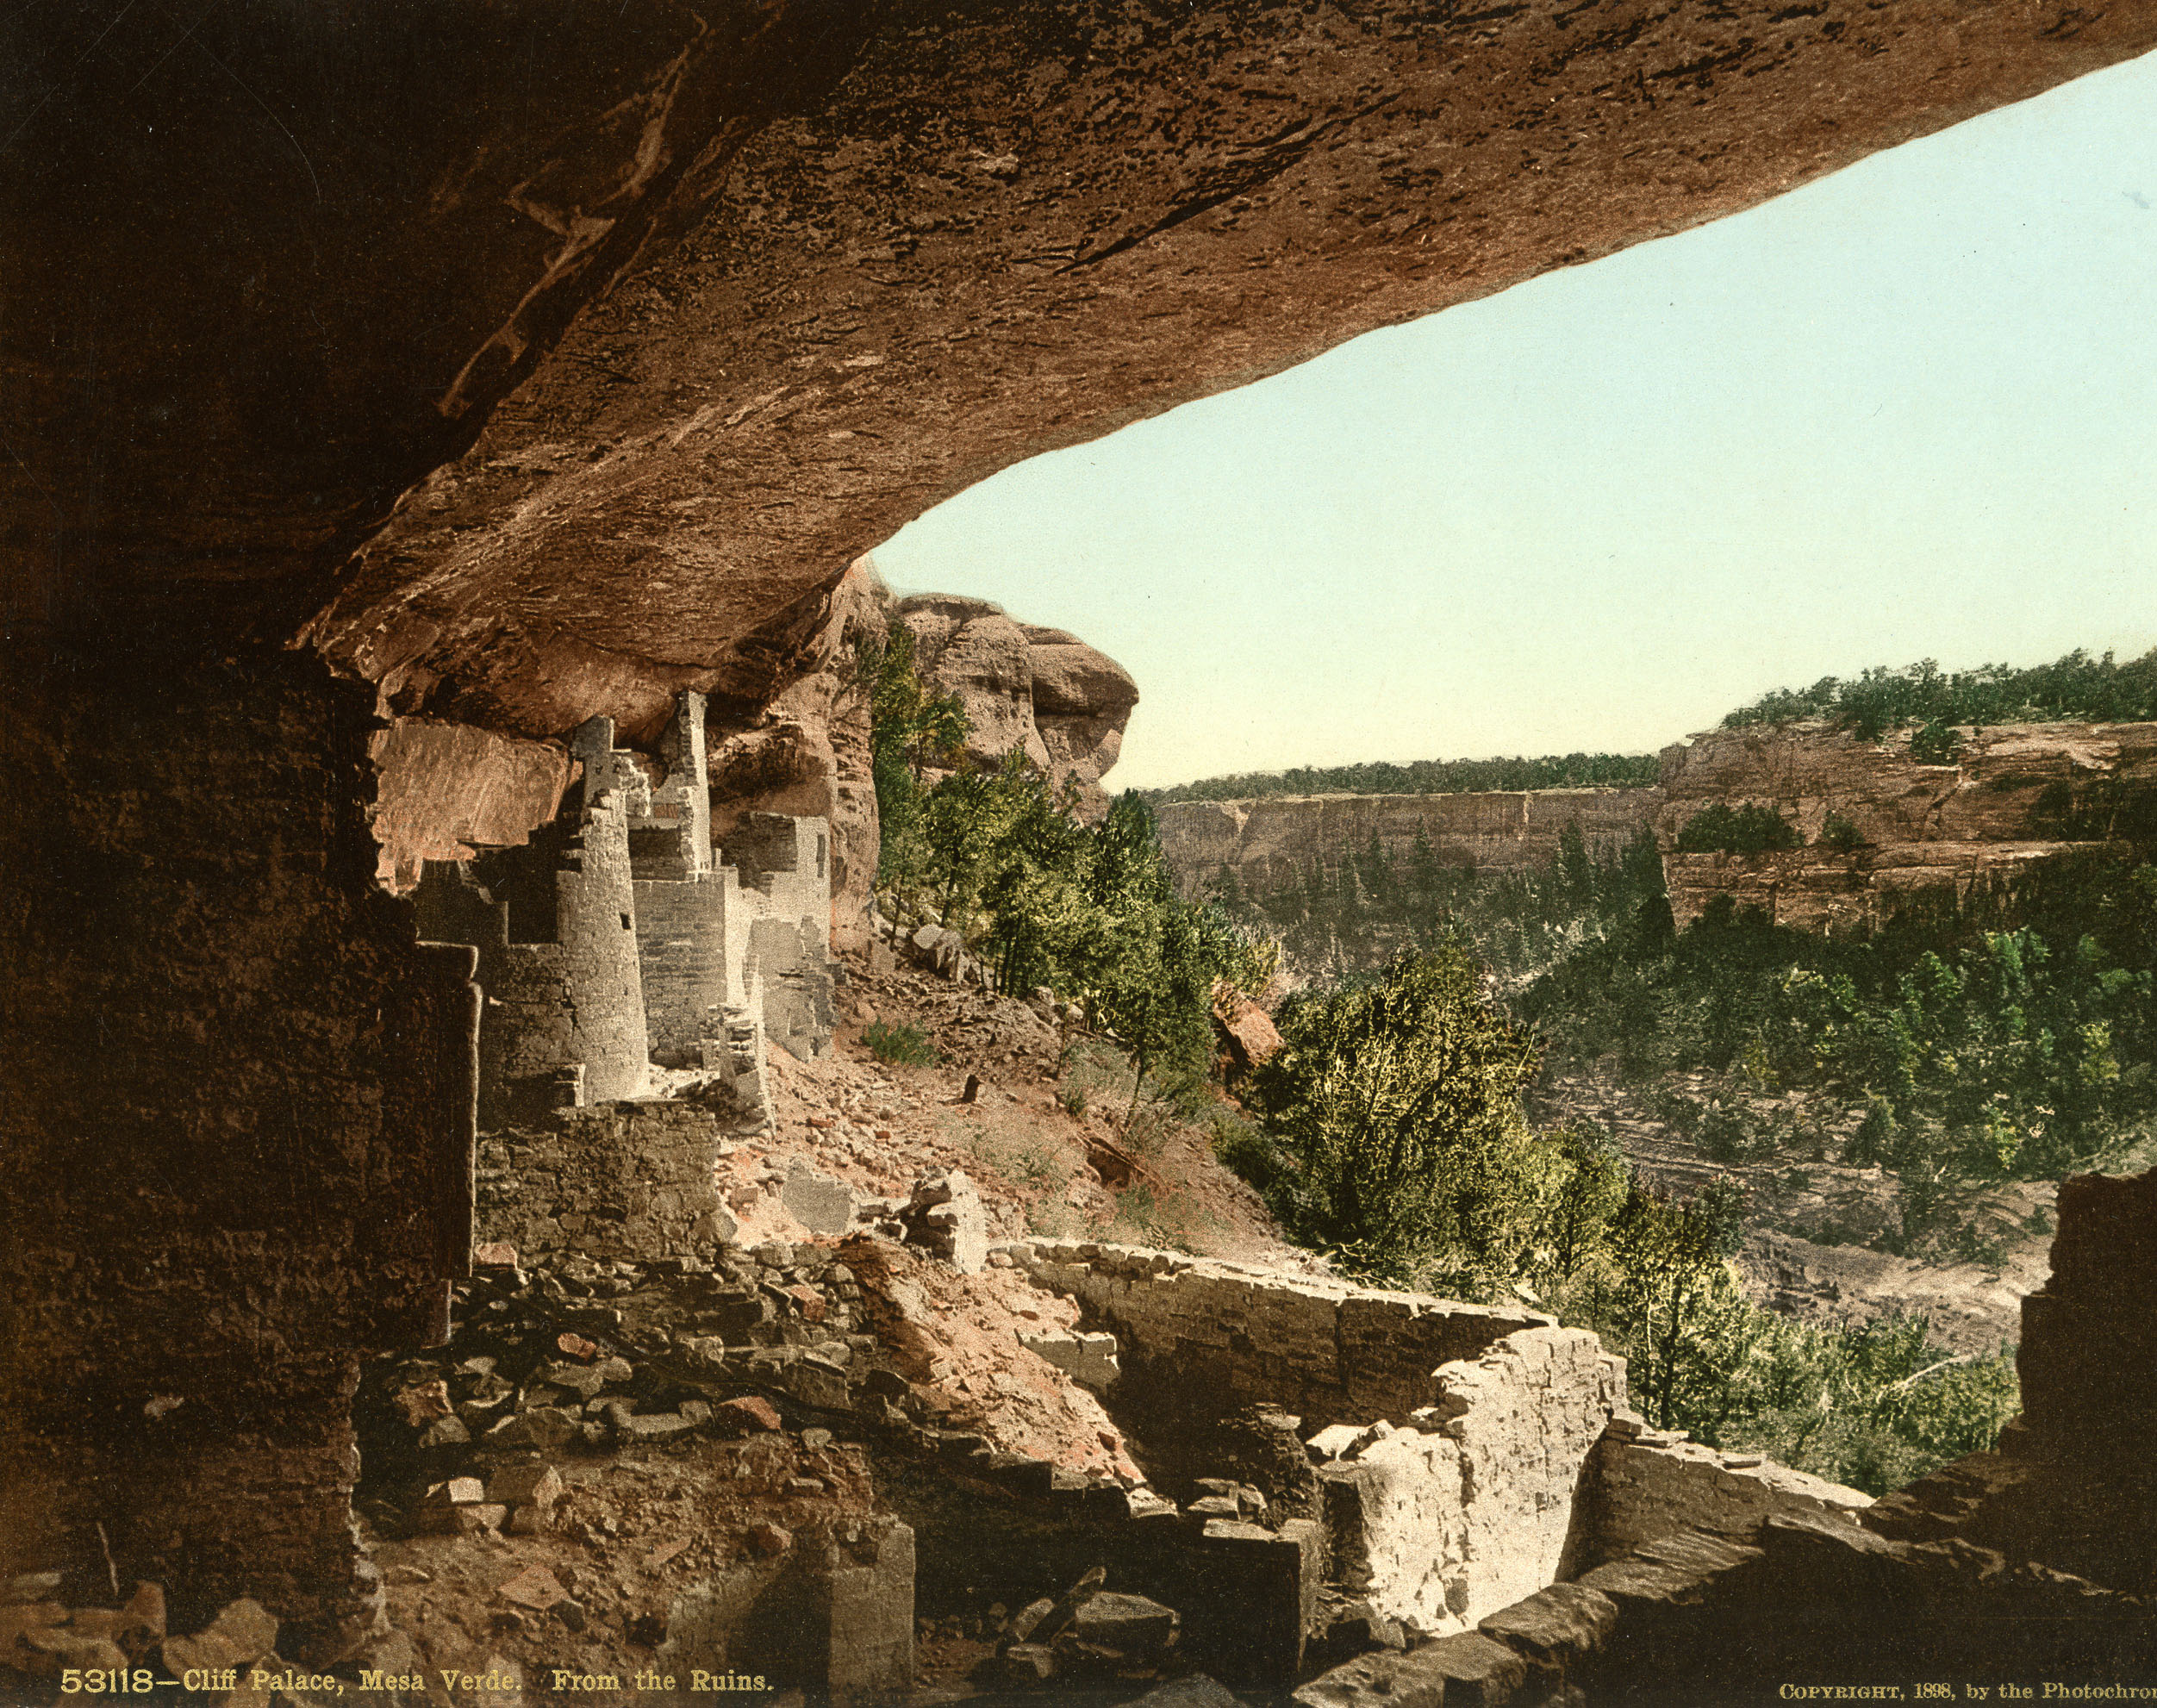 Cliff Palace, Mesa Verde Colorado. Created by the Detroit Photographic Company in 1889.